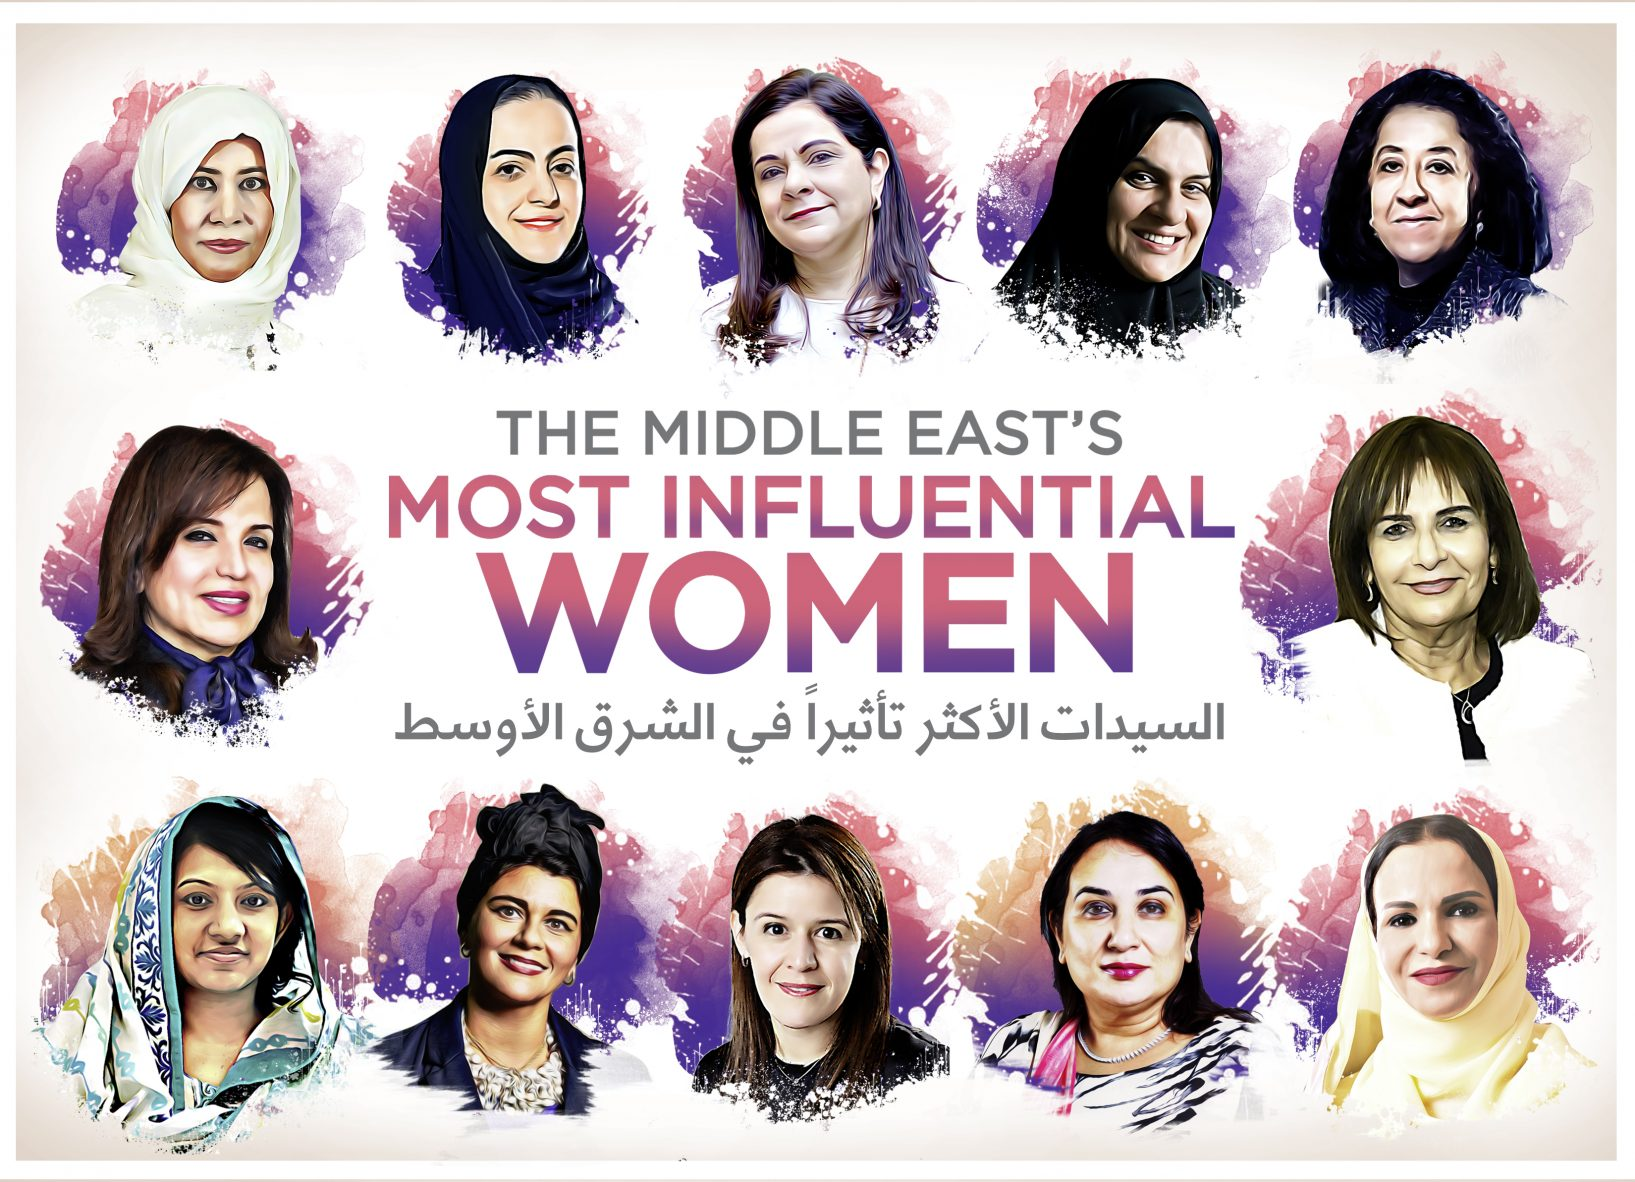 The Middle East's Most Influential Women 2018